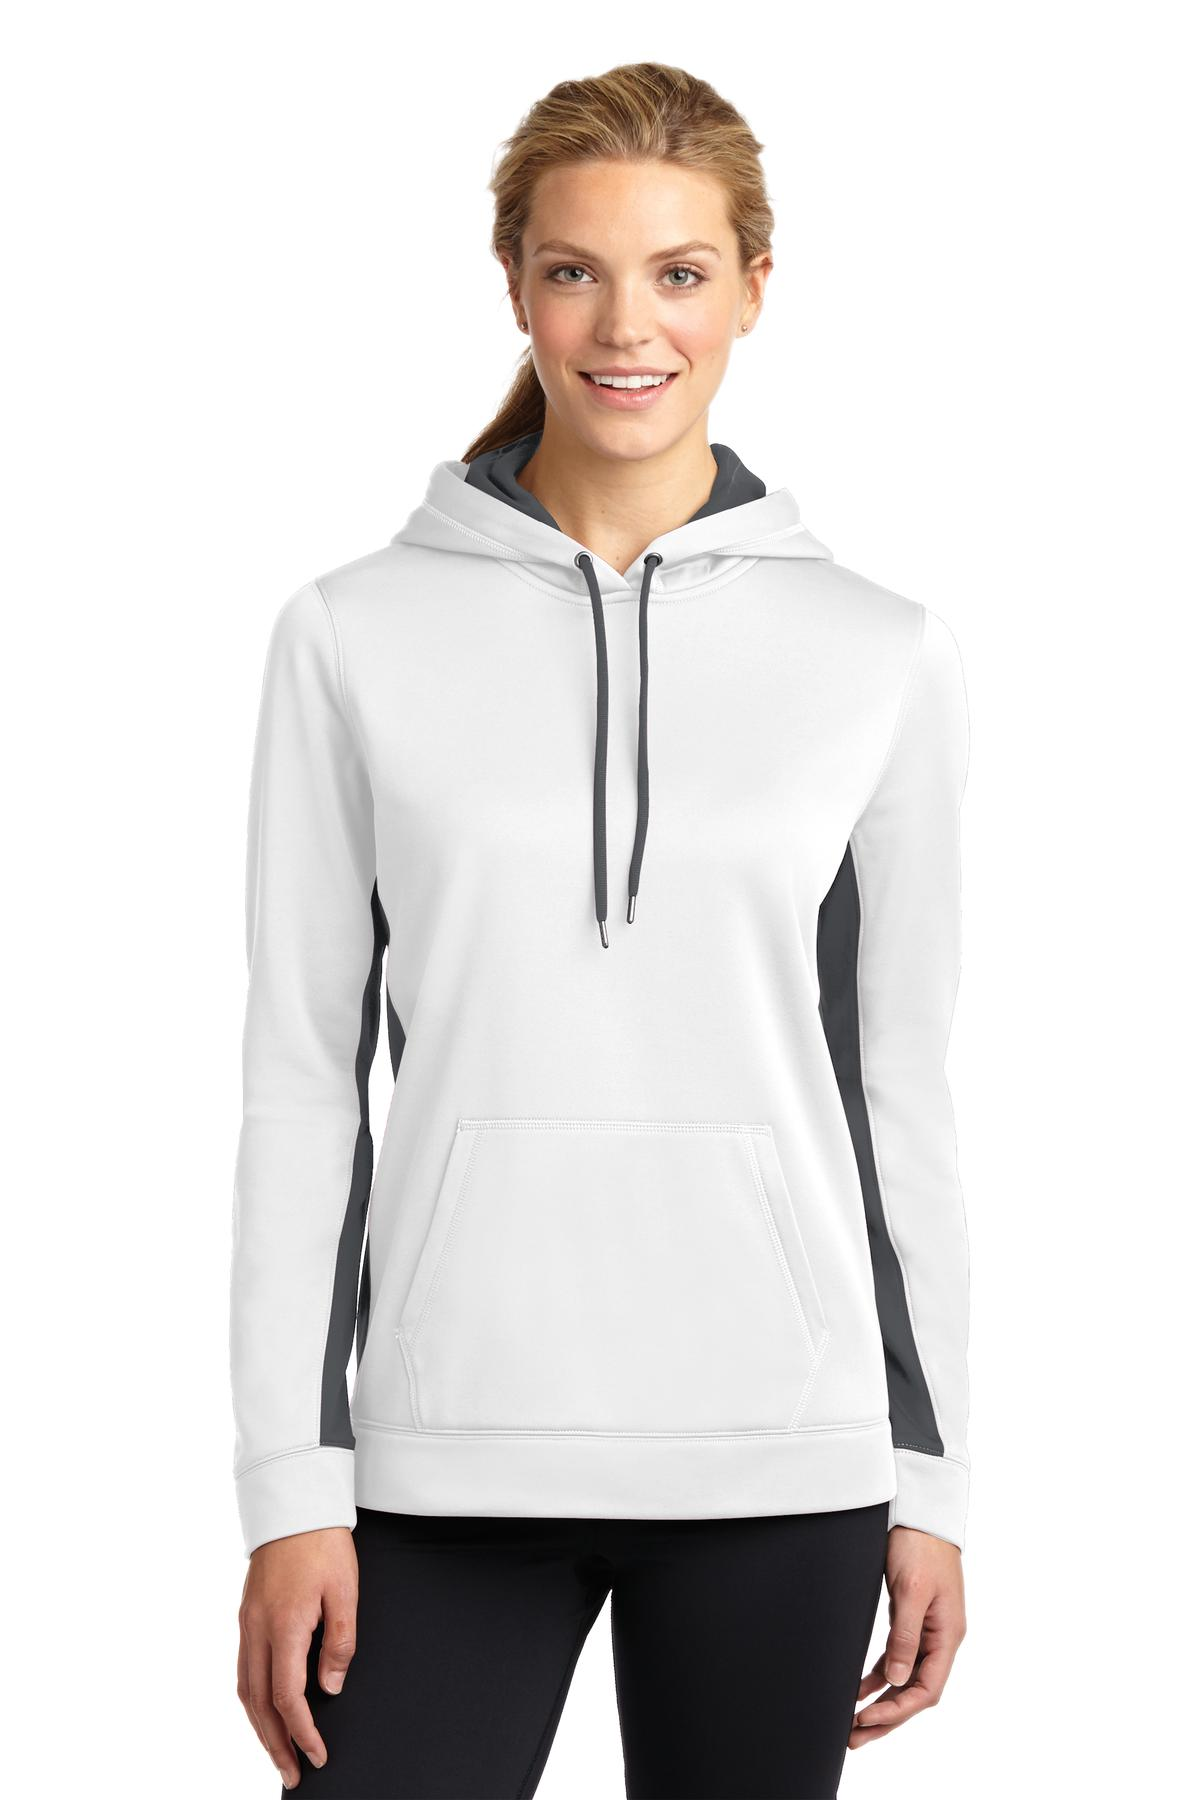 Sport-Tek ®  Ladies Sport-Wick ®  Fleece Colorblock Hooded Pullover. LST235 - White/ Dark Smoke Grey